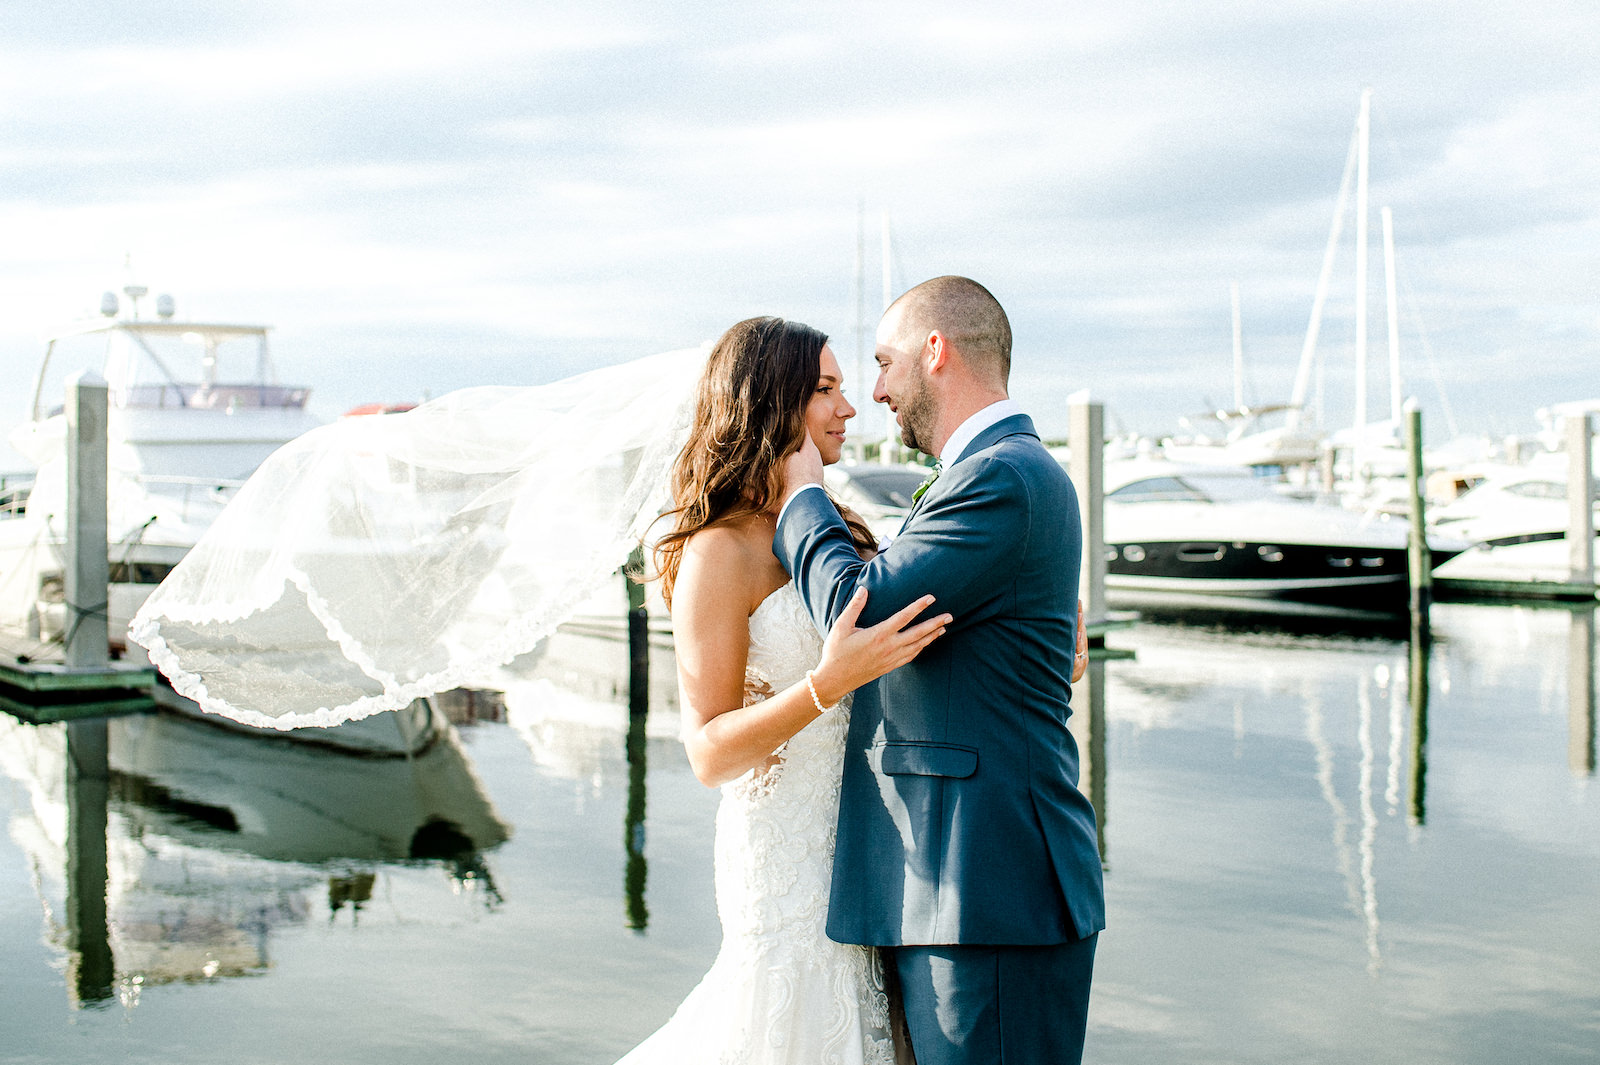 Bride and Groom Outdoor Portrait along Marina Dock at Tampa wedding venue Westshore Yacht Club | Lace Strapless Sweetheart Scalloped Edge Train Wedding Dress Bridal Gown with Elbow Length Lace Edge Veil | Groom Wearing Classic Navy Suit | Dewitt for Love Photography